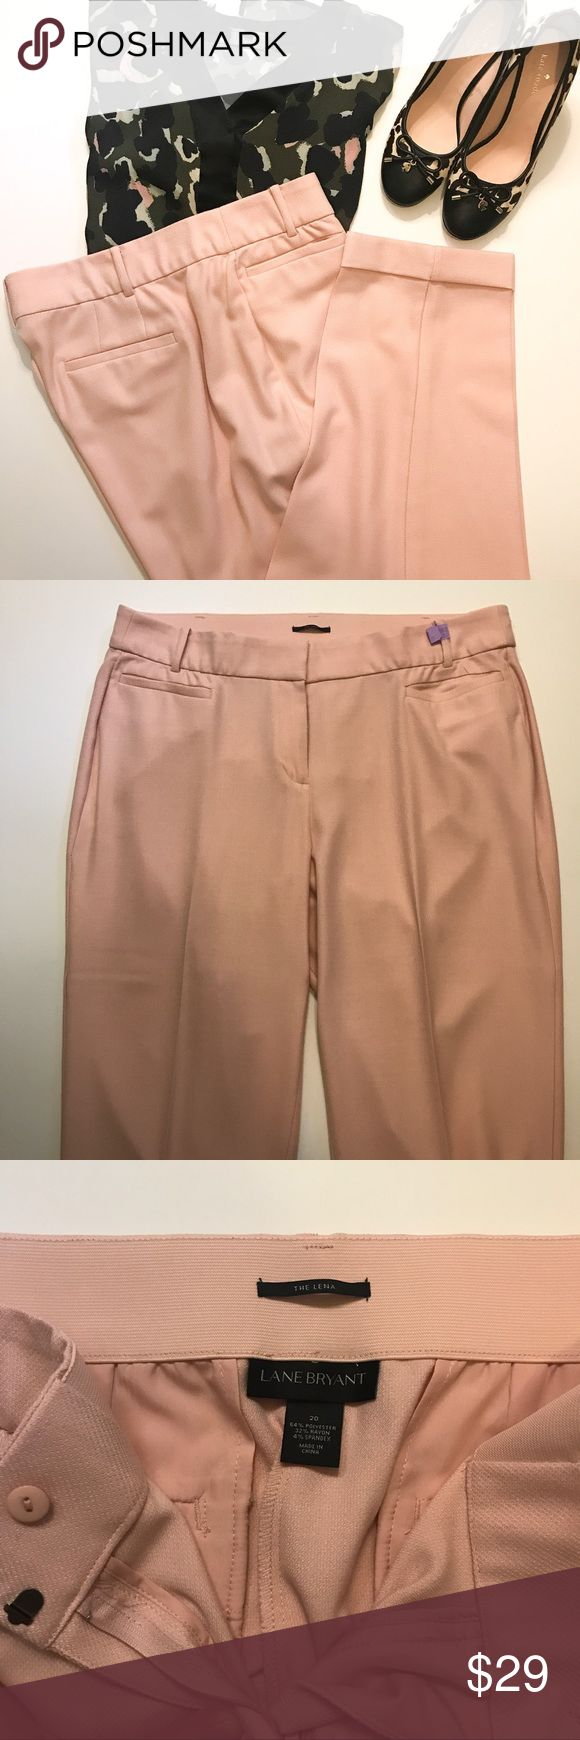 """Light Pink Lena Pant 20 Styled with inner elastic waistband.  Cuffed leg. 28"""" inseam. Pockets. EUC Lane Bryant Pants Ankle & Cropped"""